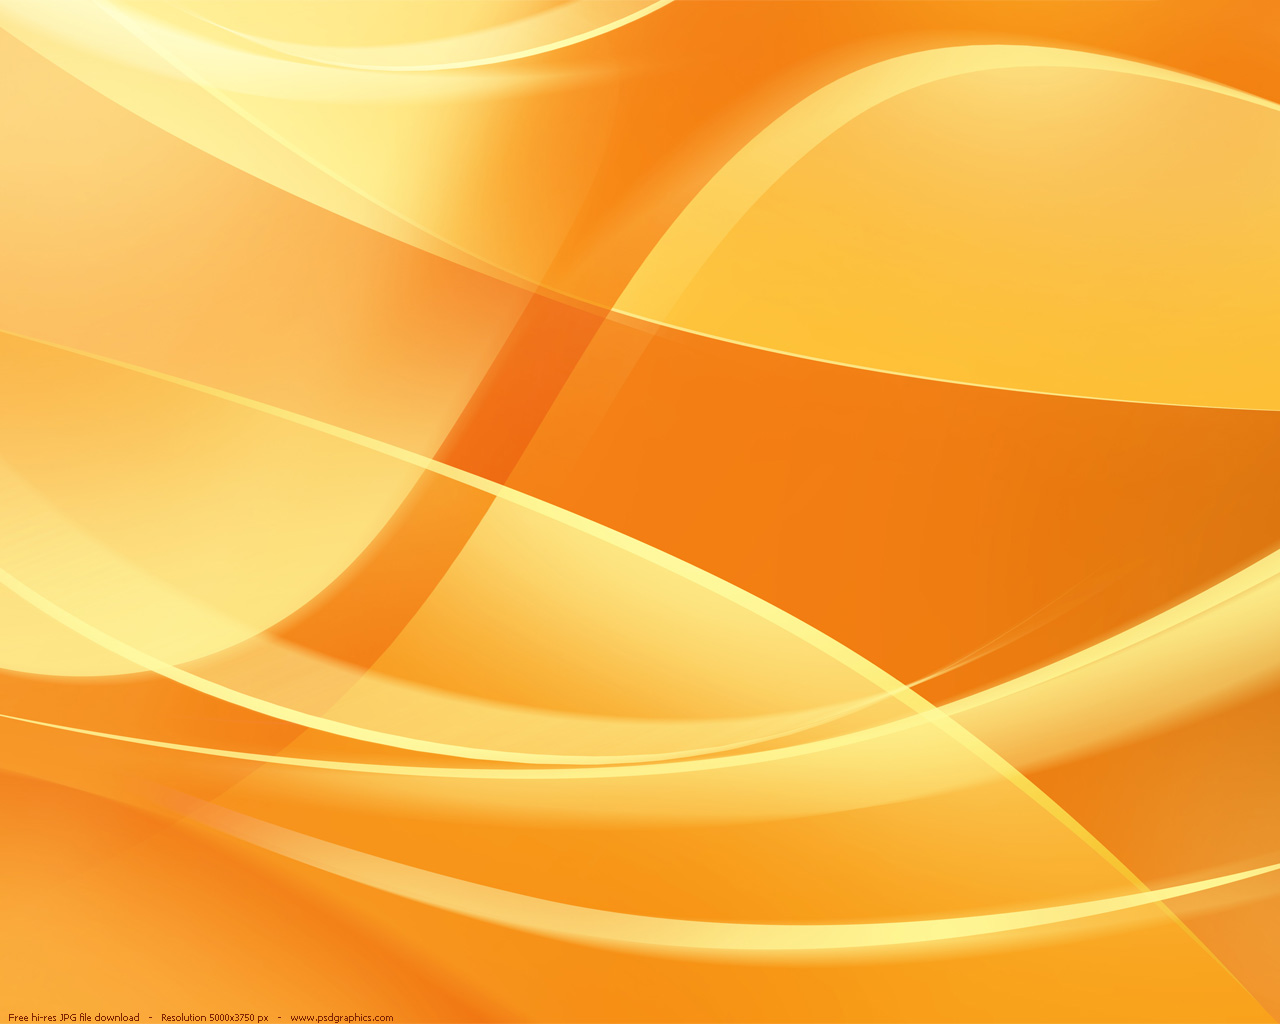 Wallpaper Orange Design : Abstract orange backgrounds psdgraphics